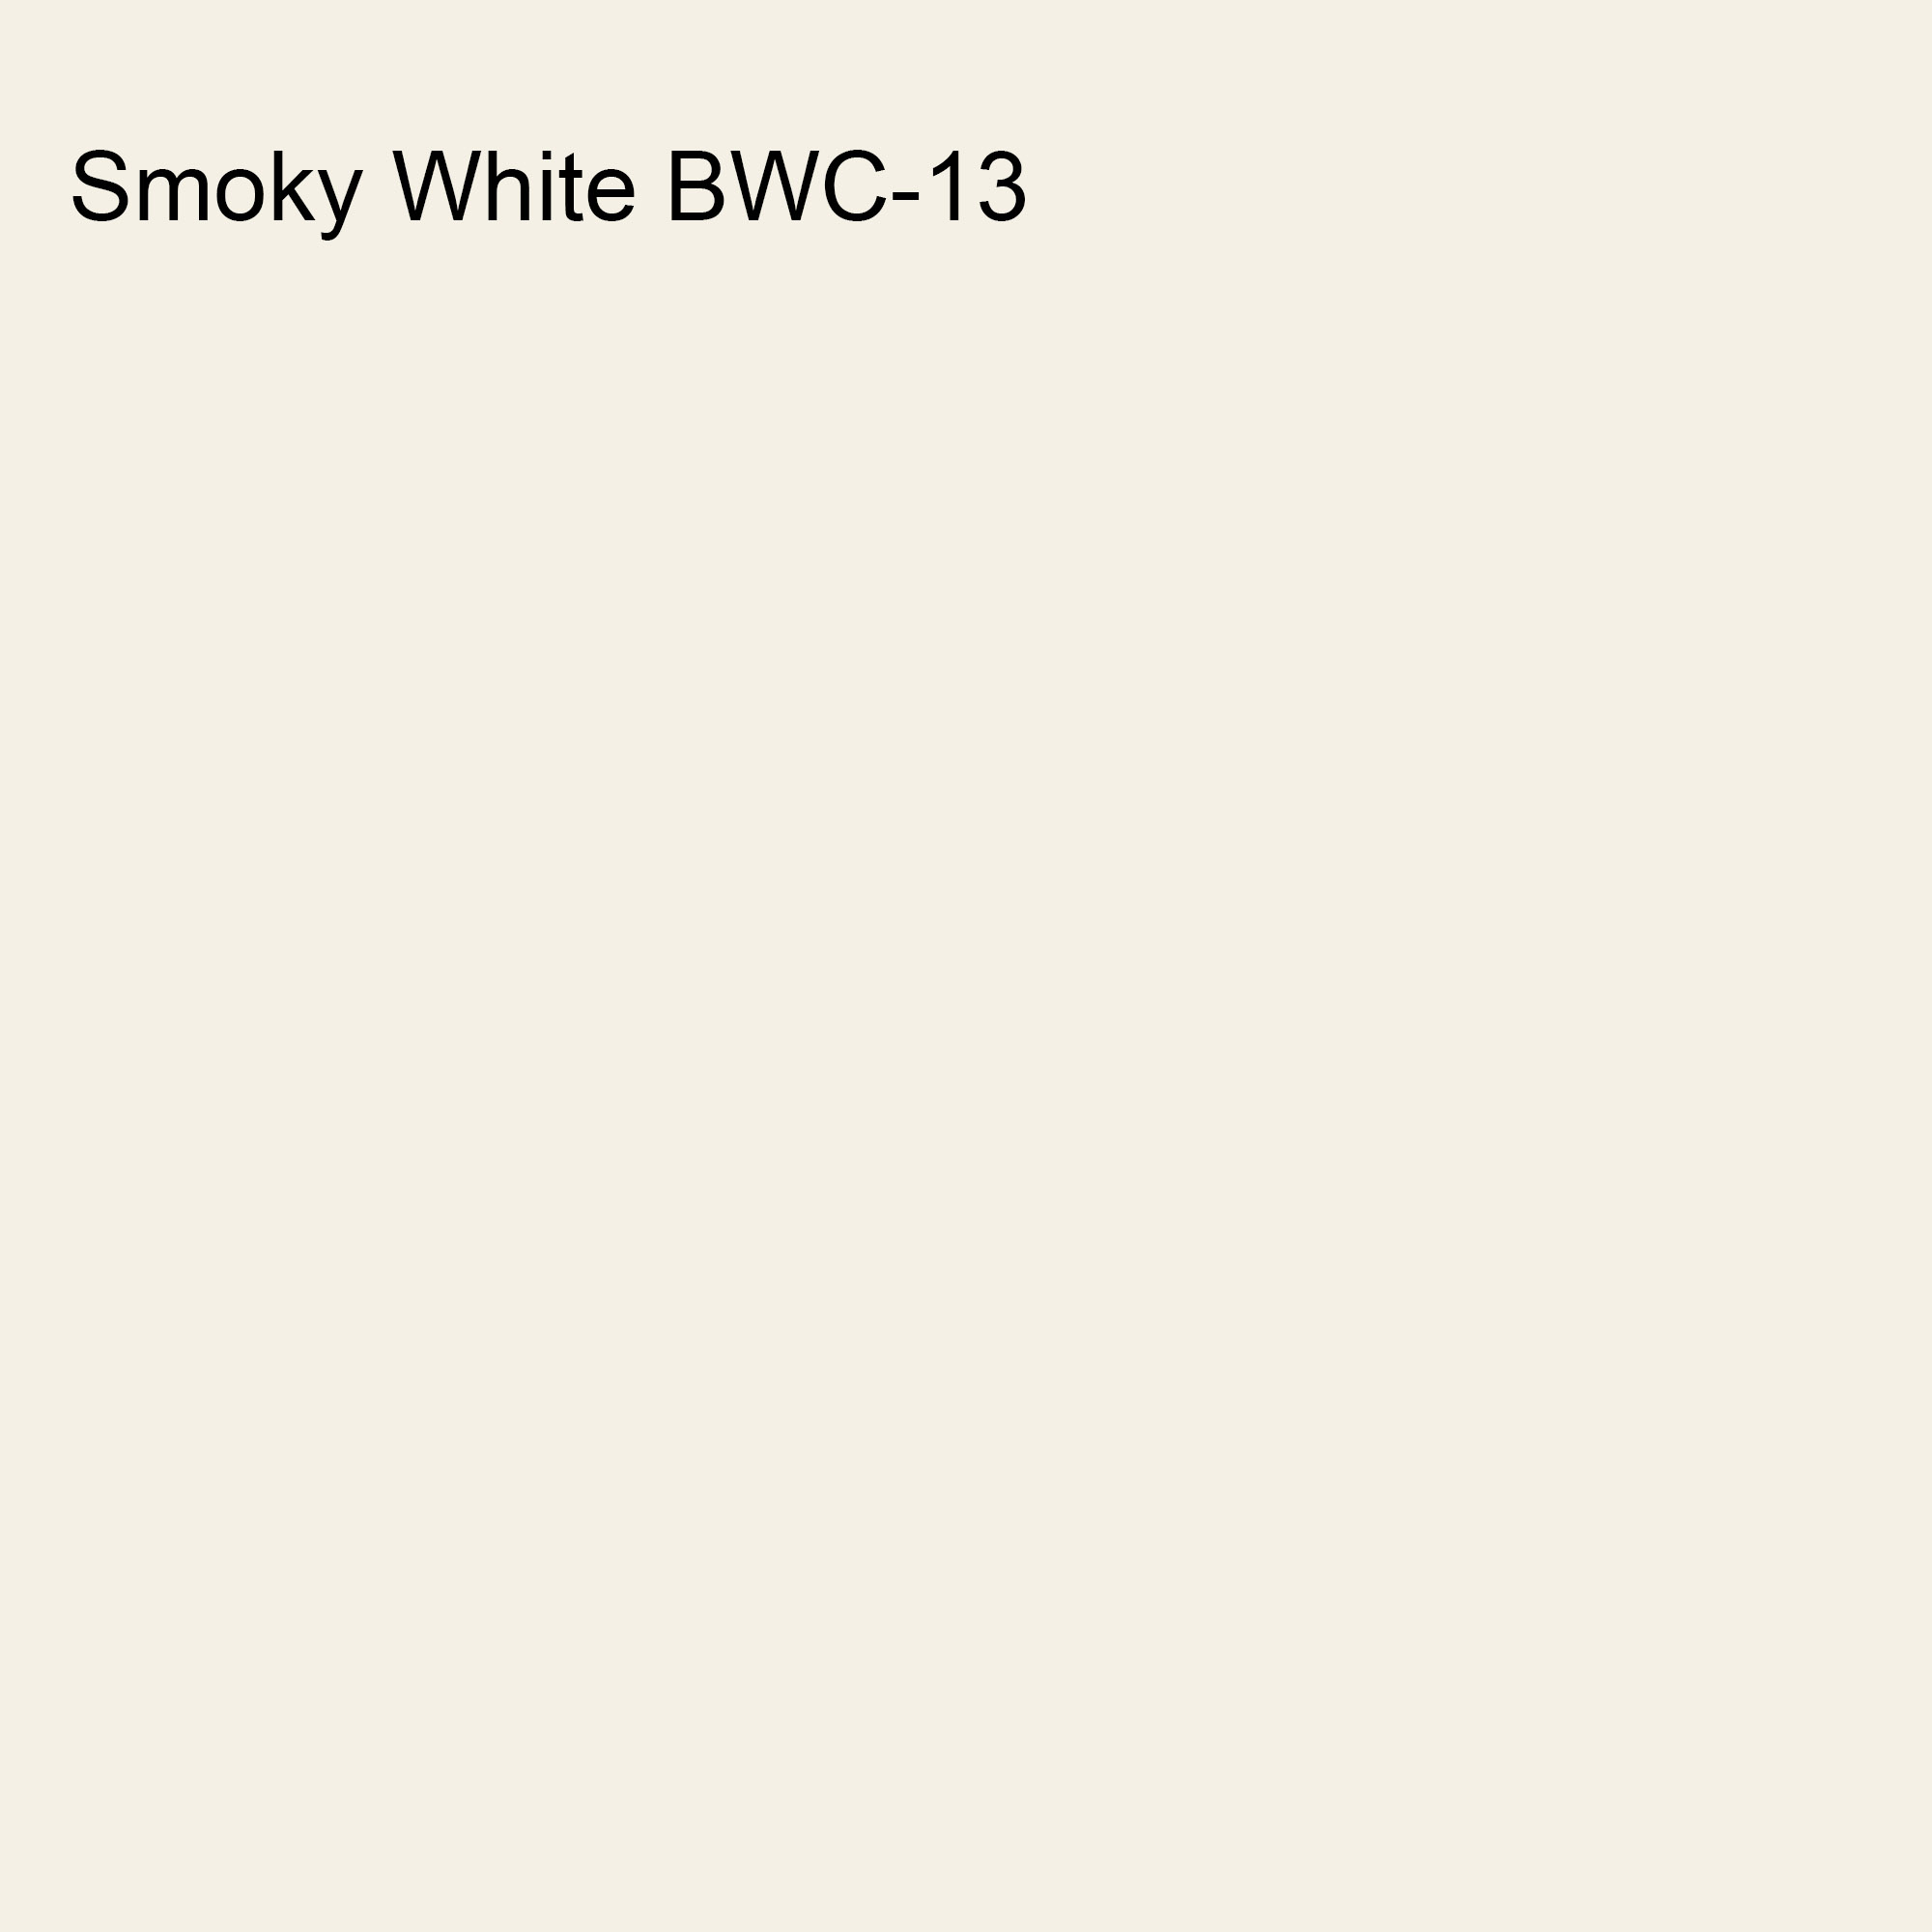 Smoky White BWC-13 Behr 2021 Trending Color